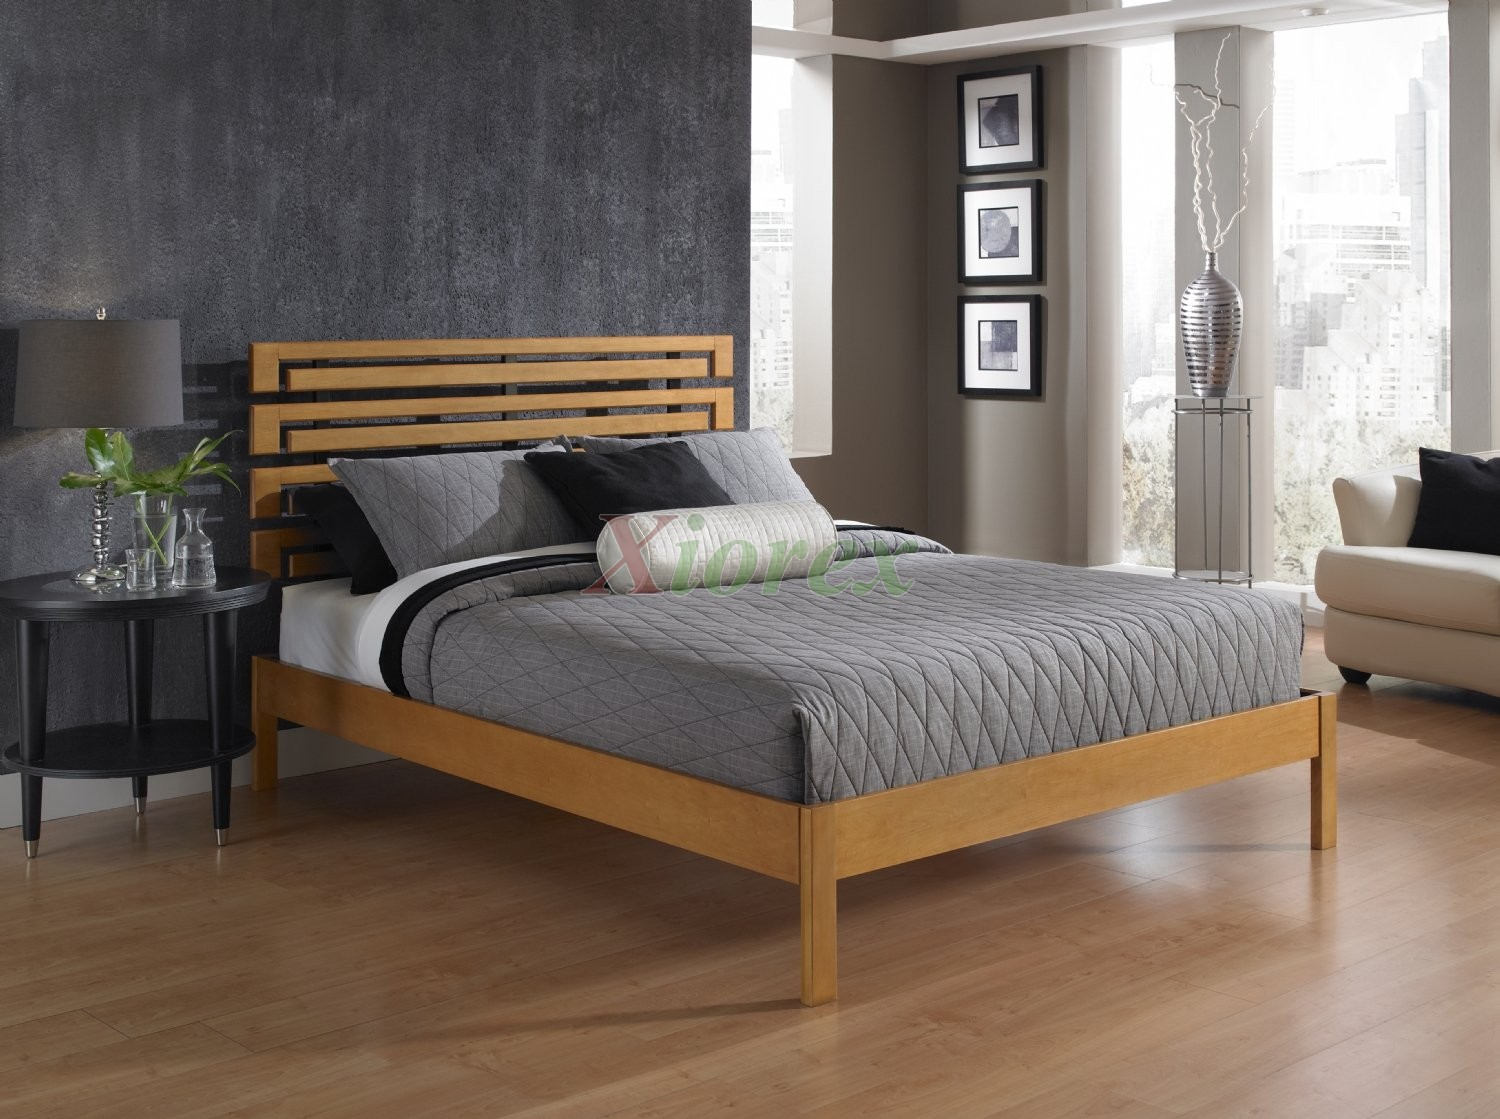 Akita Platform Bed Full / Queen / King Size X0001001 ...